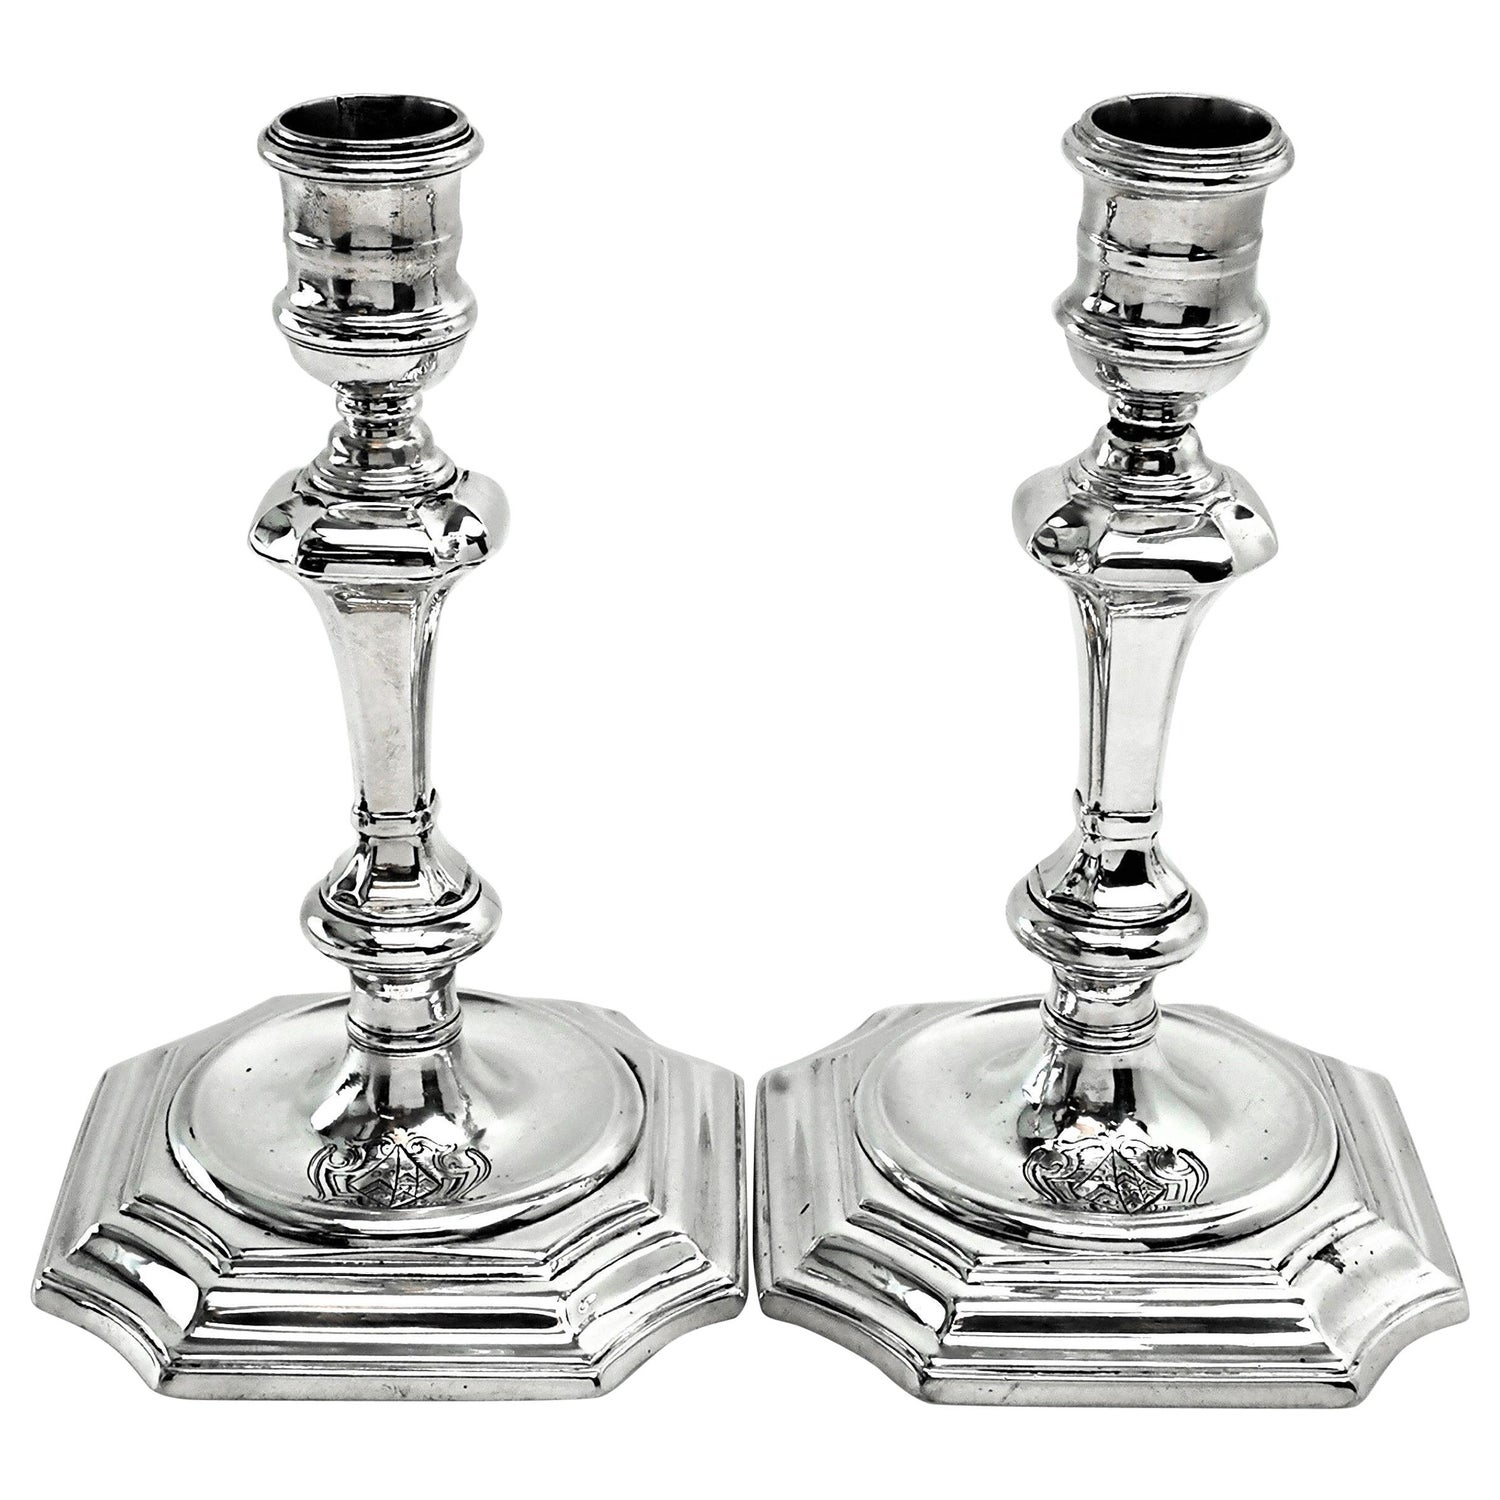 Pair of Antique George I Georgian Silver Candlesticks / Candleholders 1724